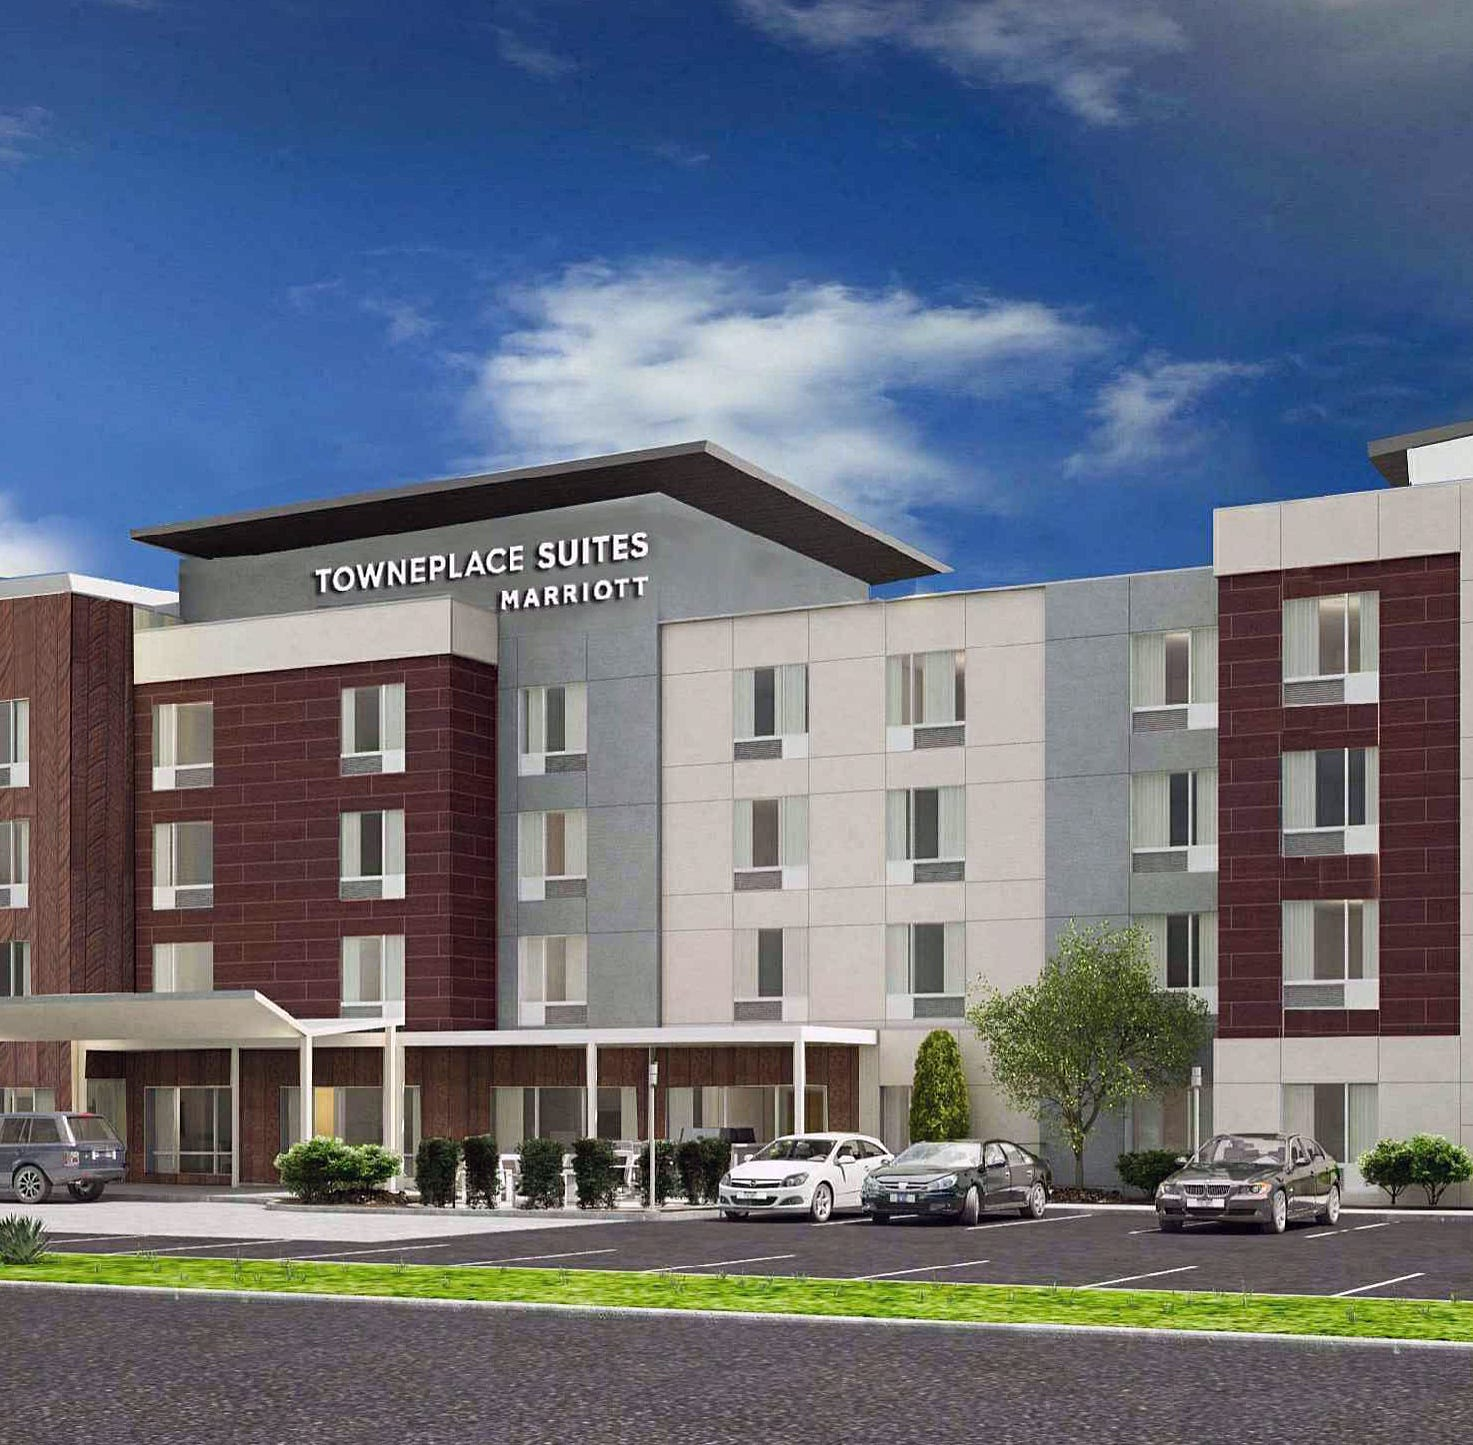 TownePlace Suites by Marriott opening in Fairfield subsequent tumble